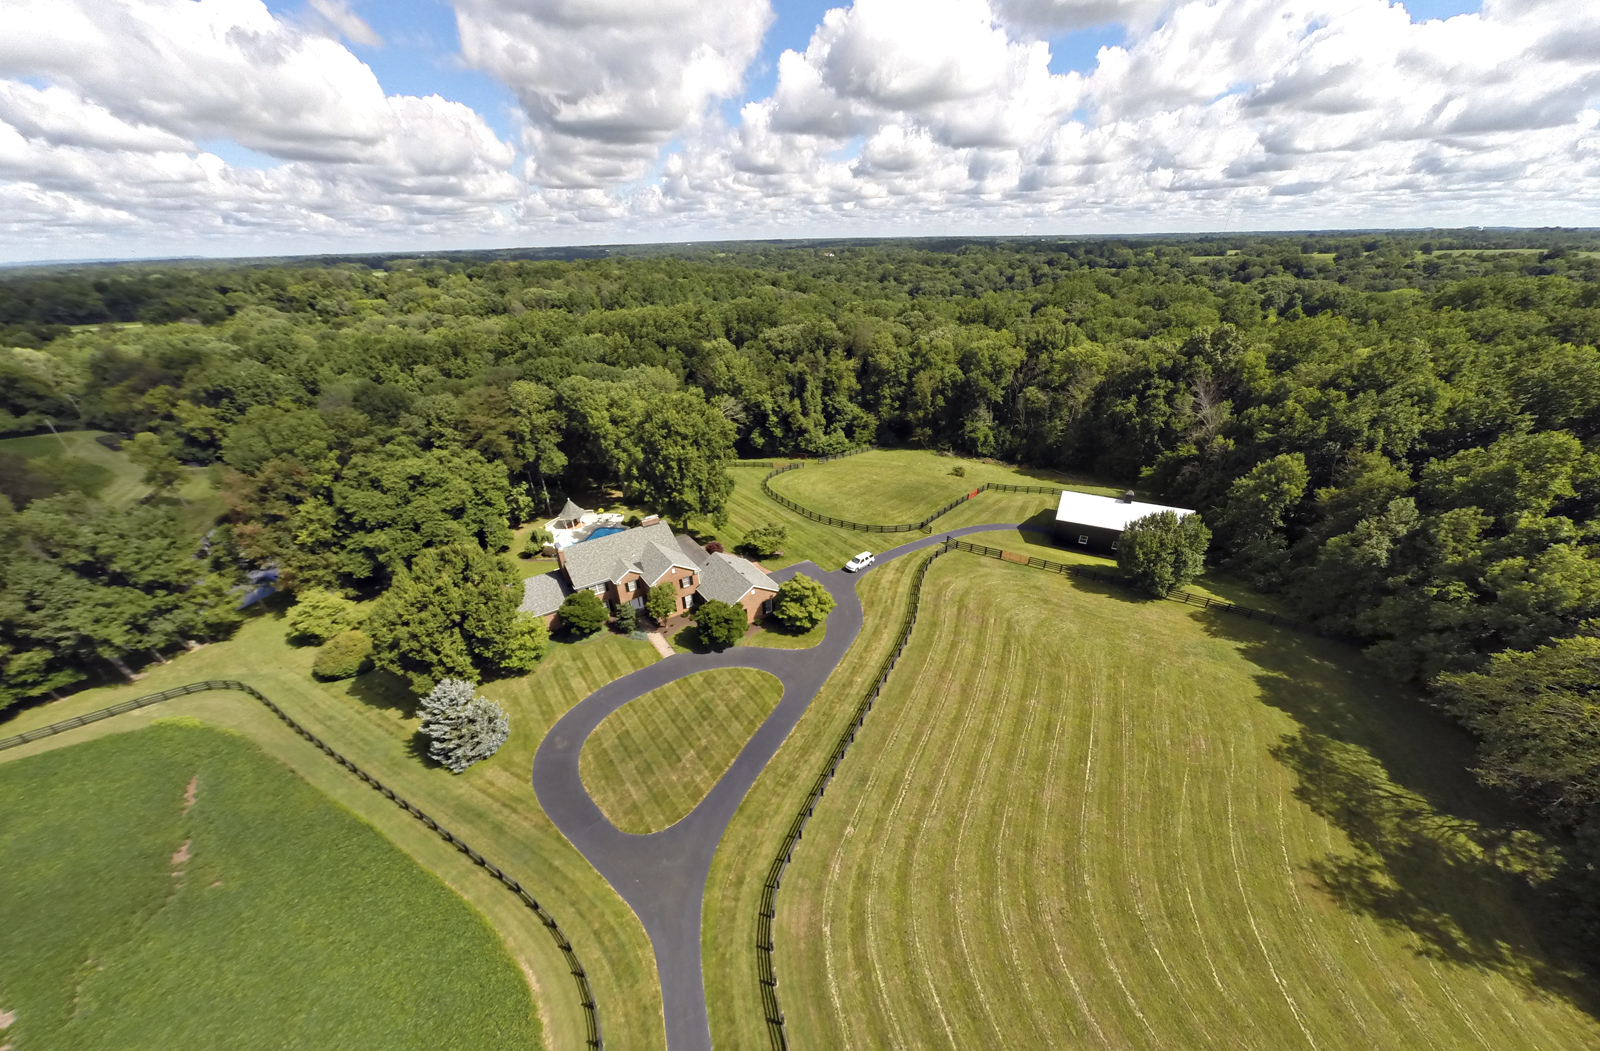 Farm / Ranch / Plantation for Sale at 6801 Old Zaring Rd Crestwood, Kentucky 40014 United States